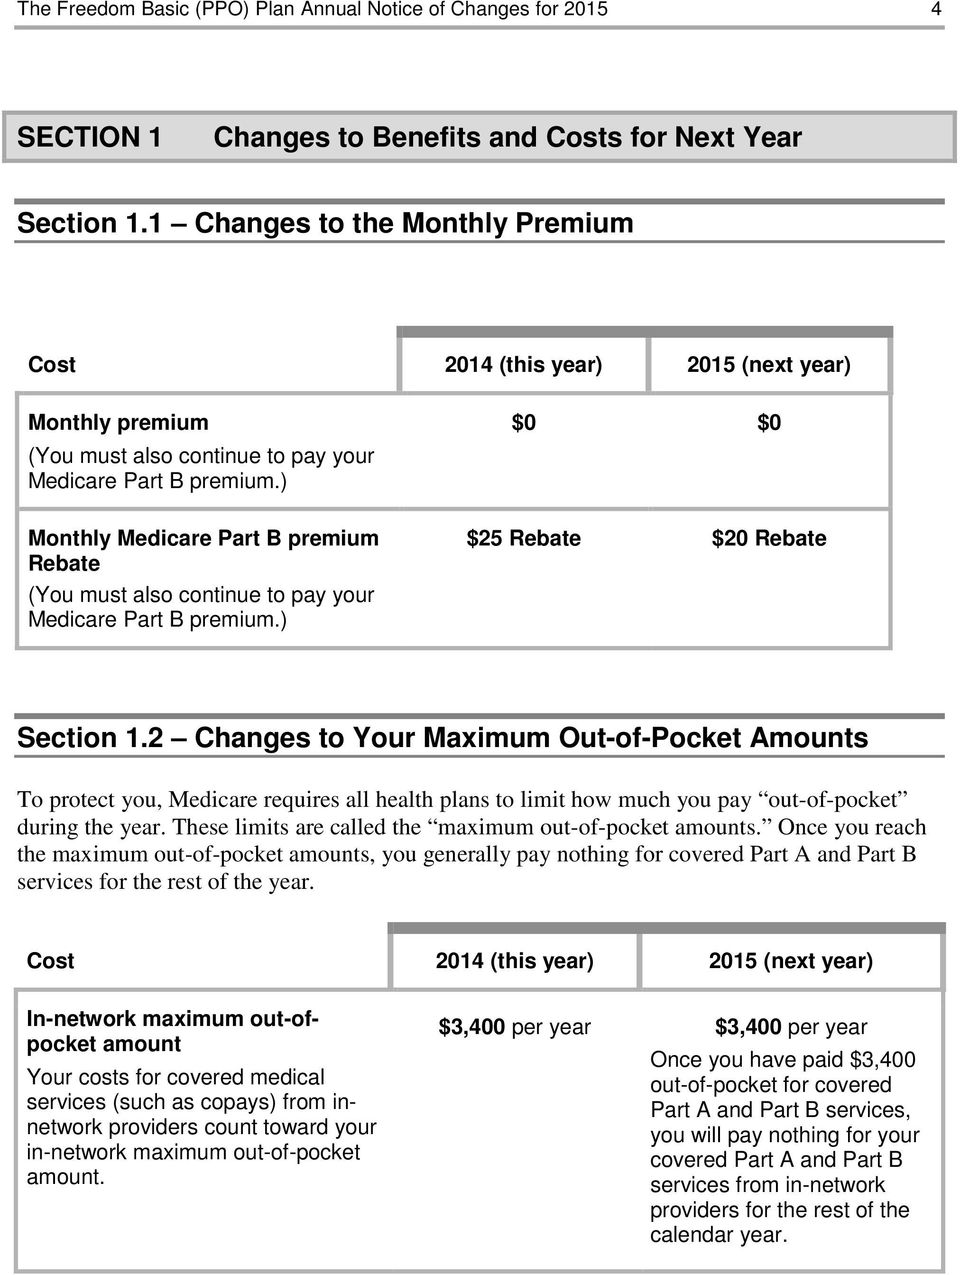 ) Monthly Medicare Part B premium Rebate (You must also continue to pay your Medicare Part B premium.) $0 $0 $25 Rebate $20 Rebate Section 1.